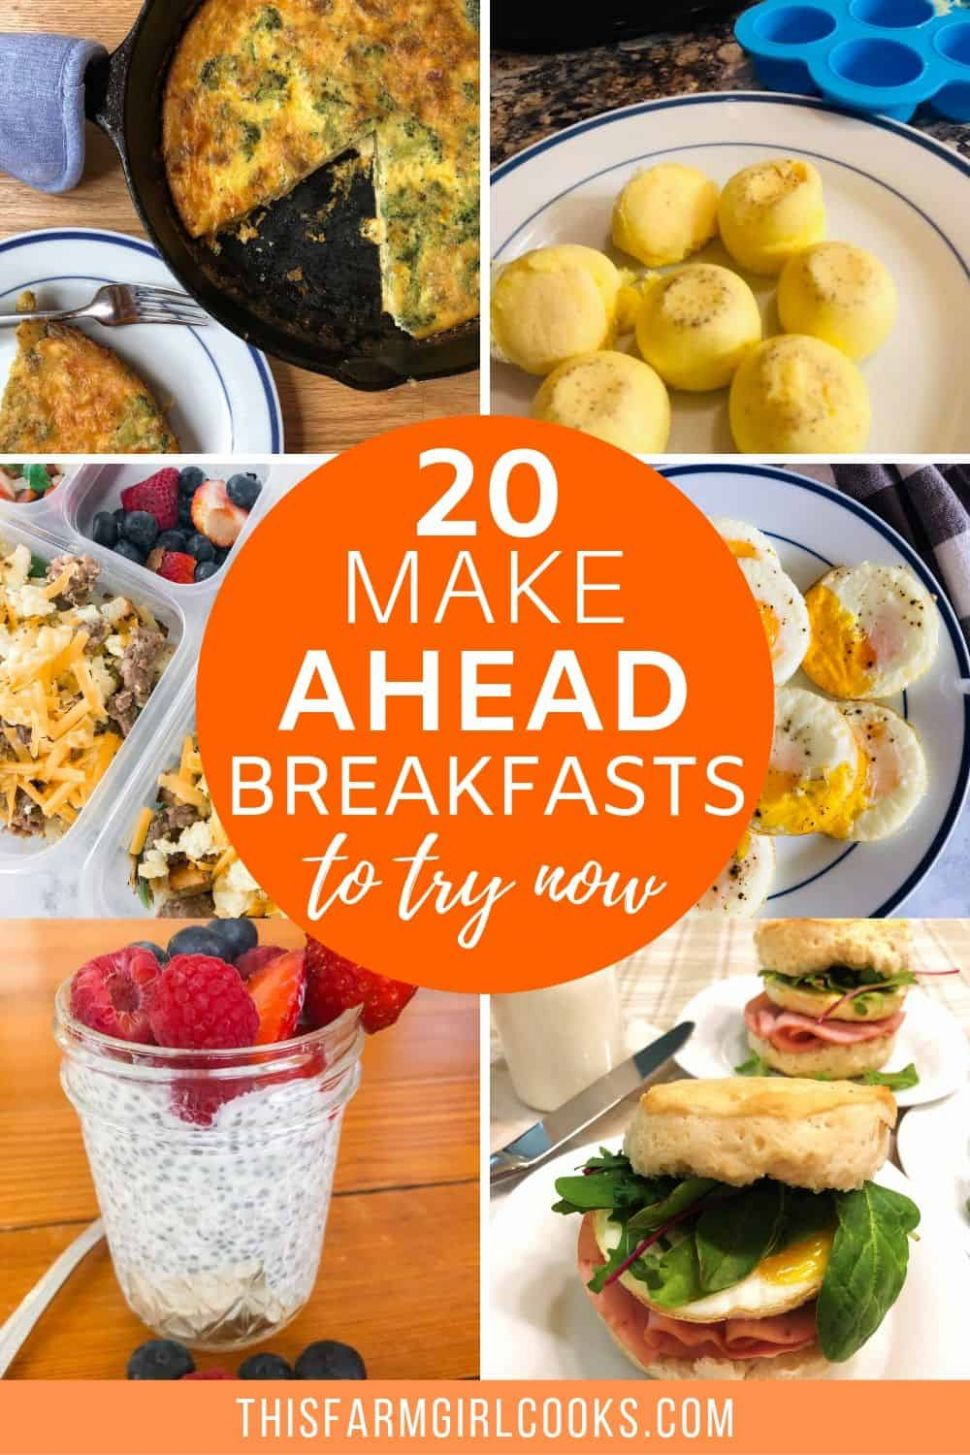 8 Make Ahead Breakfast Ideas That Will Change Your Mornings